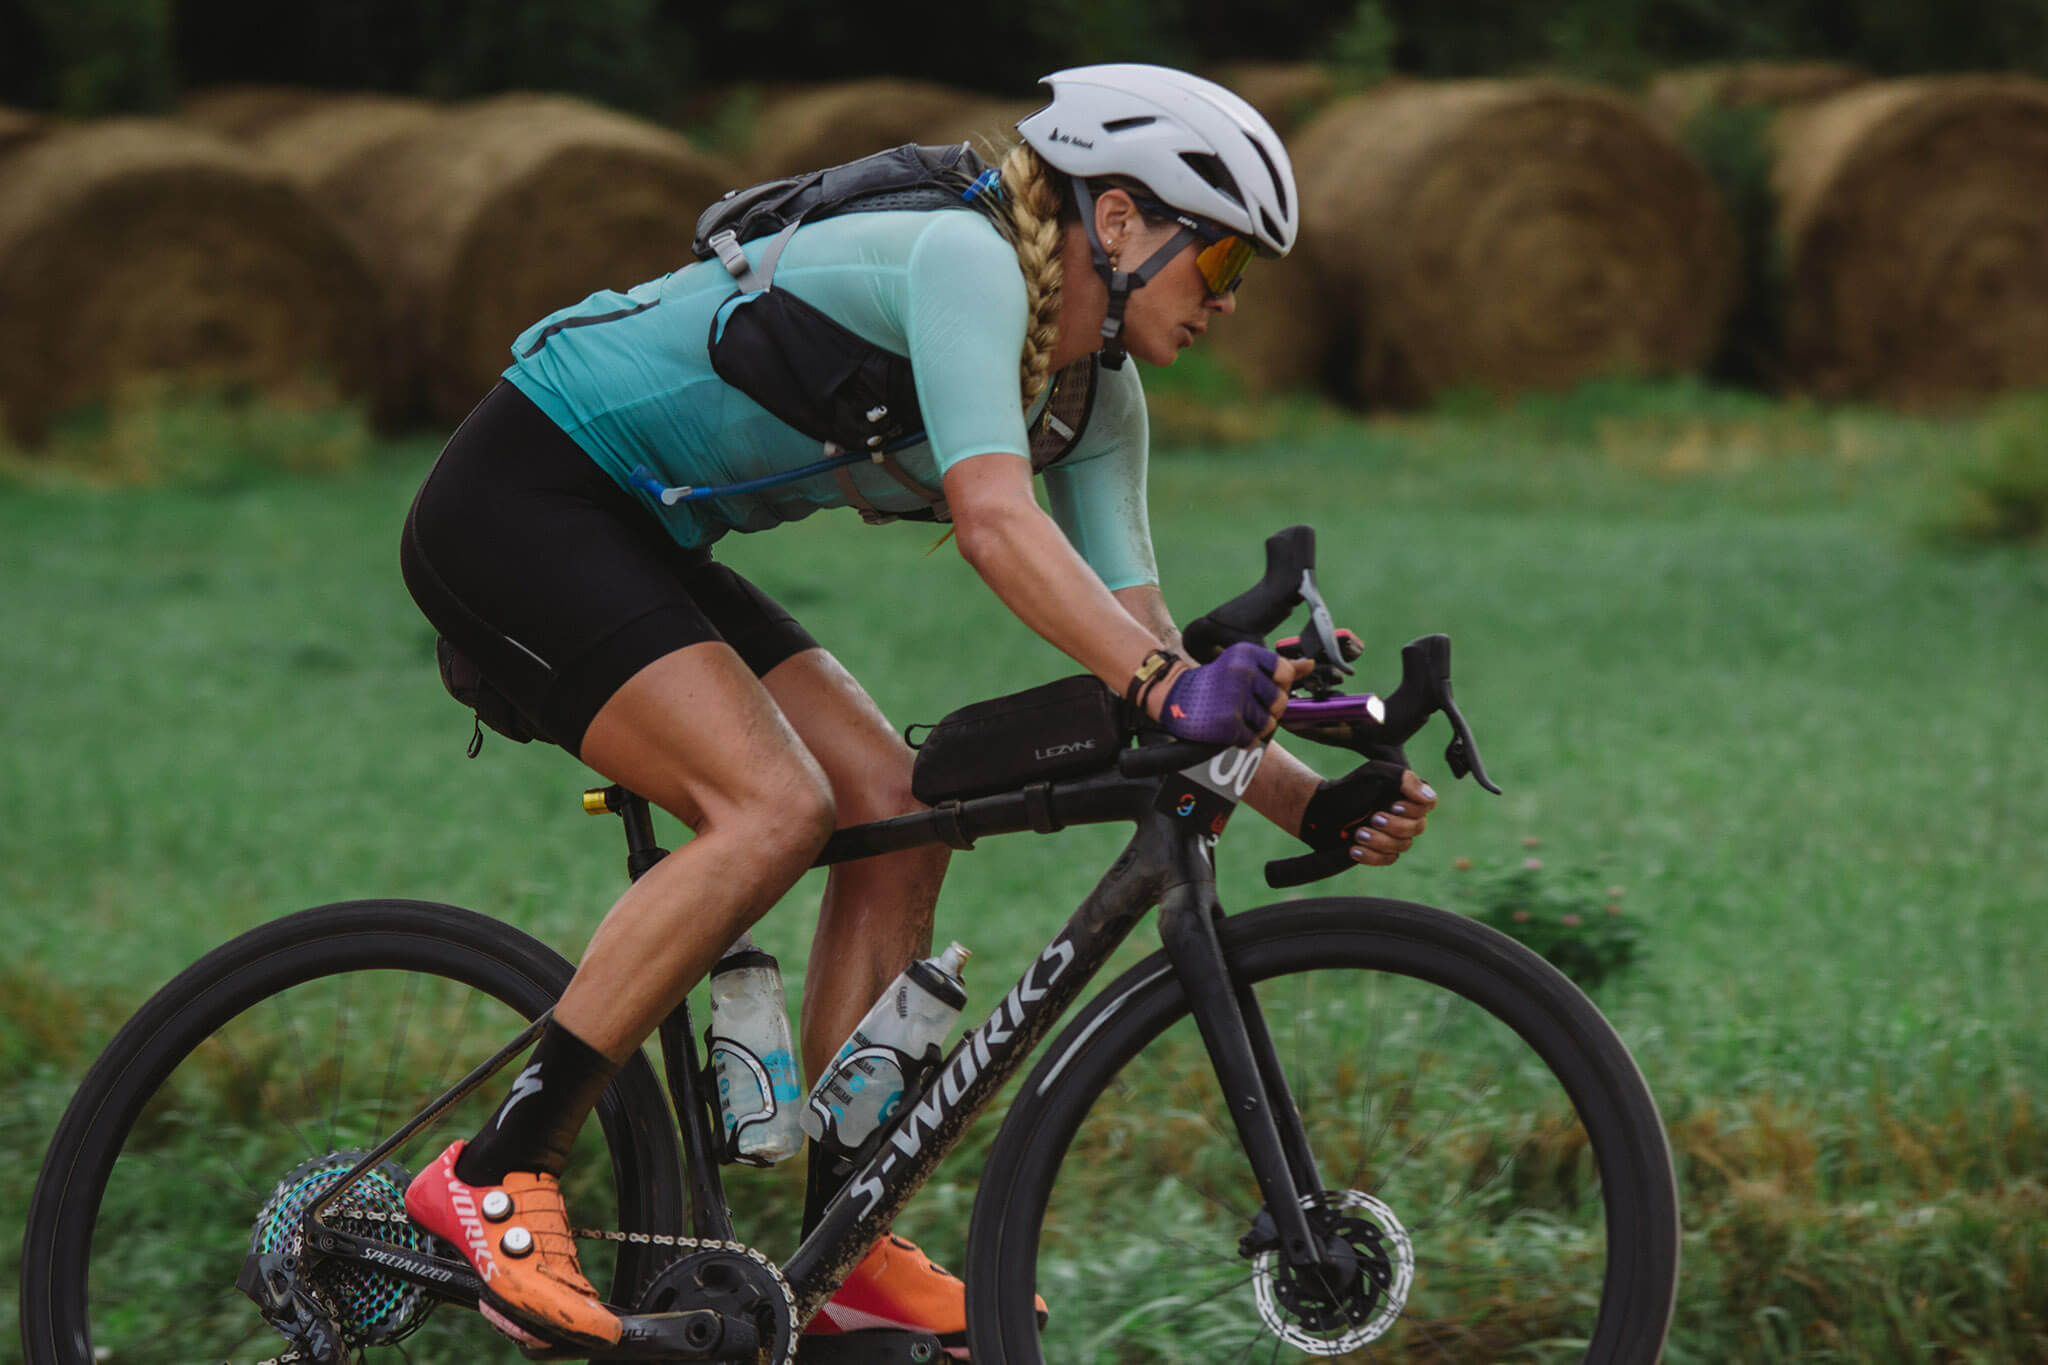 3X Gravel World Champ, Alison Tetrick, putting her Rovals through the paces